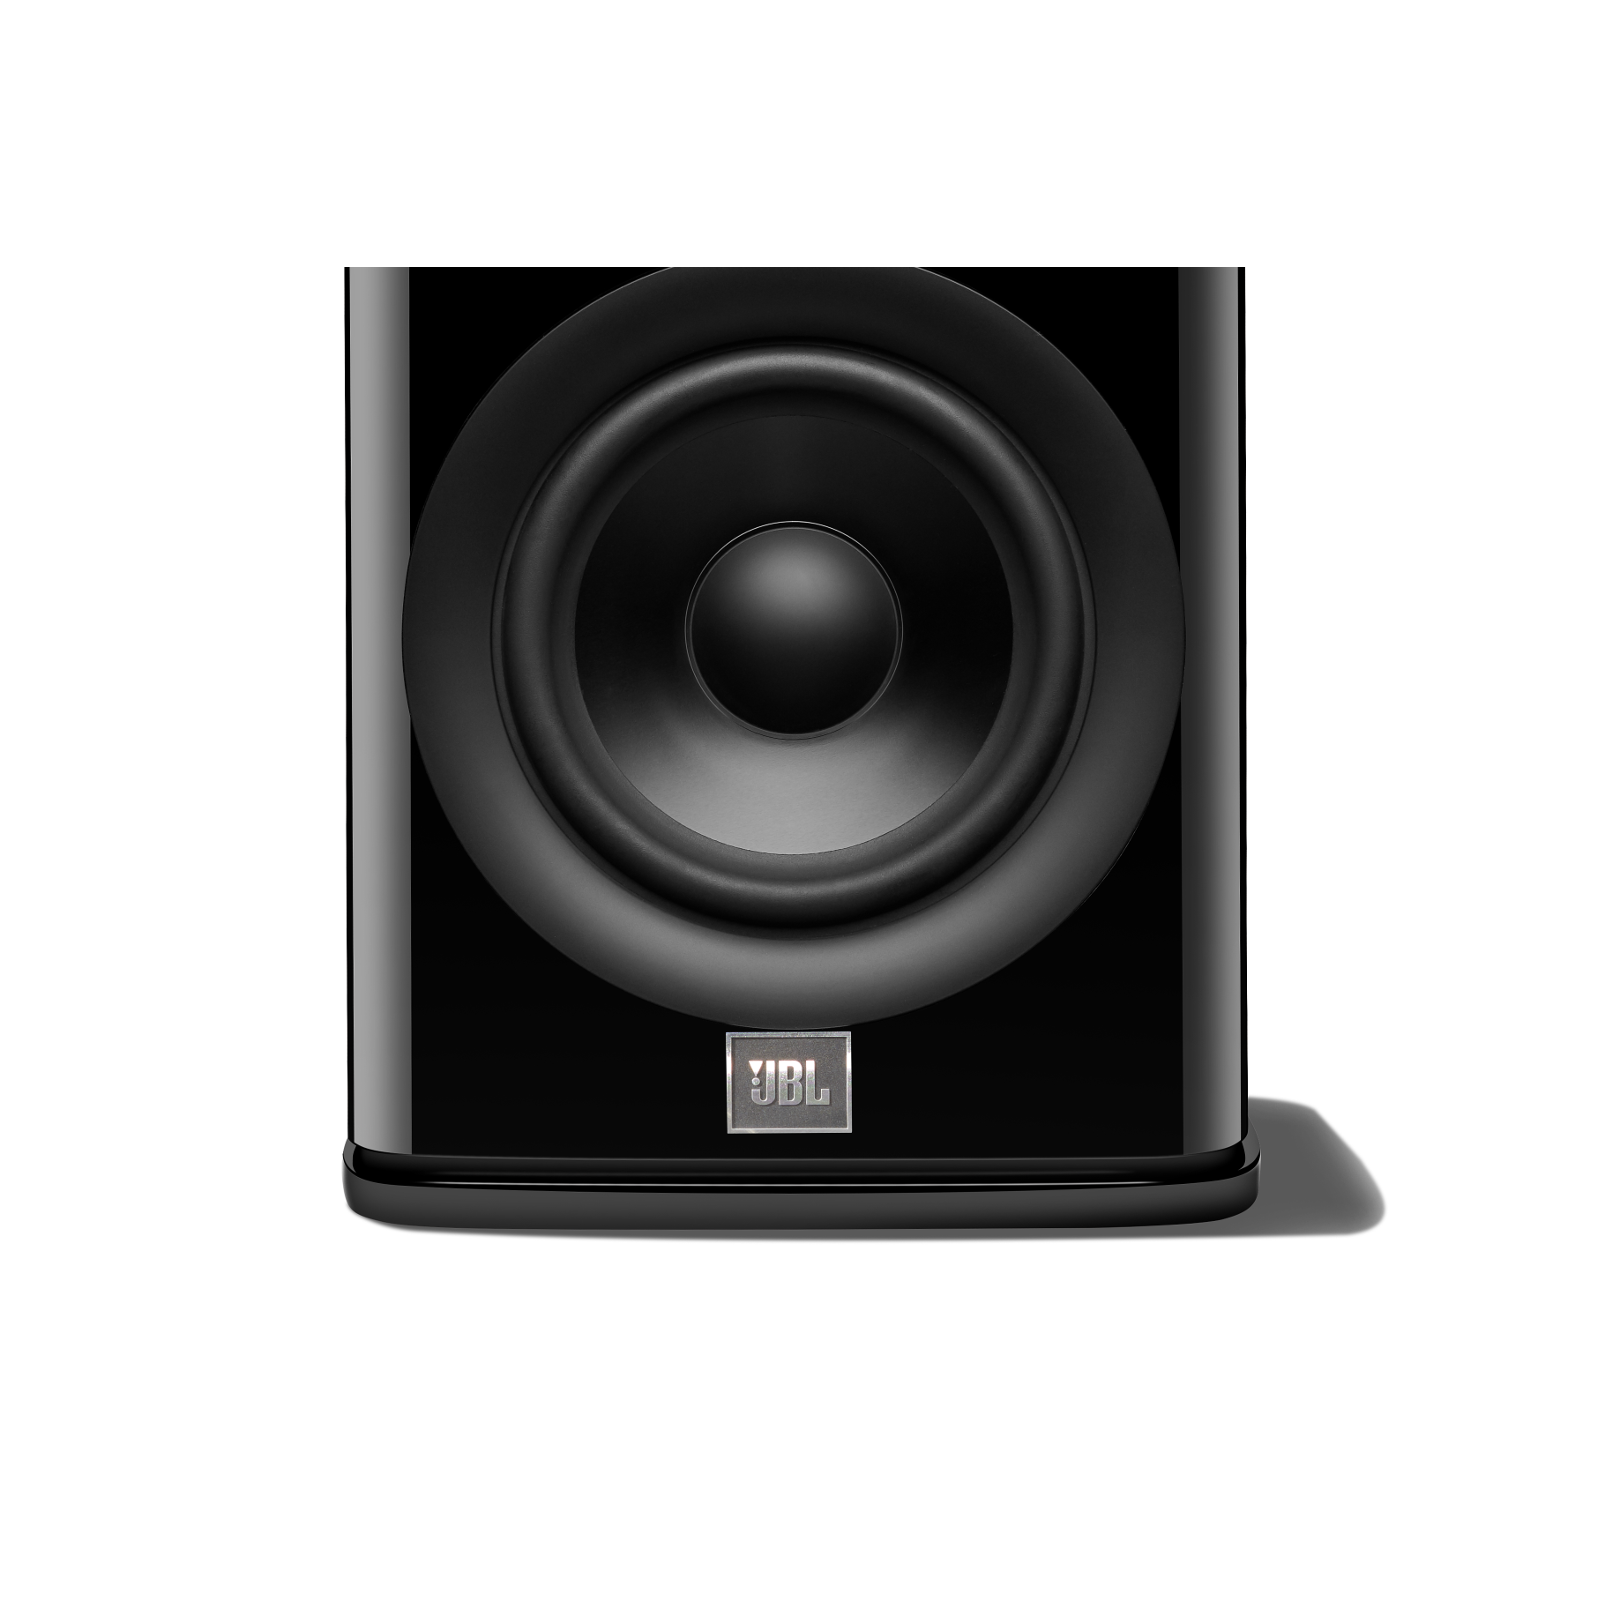 HDI-1600 - Black Gloss - 2-way 6.5-inch (165mm) Bookshelf Loudspeaker - Detailshot 1